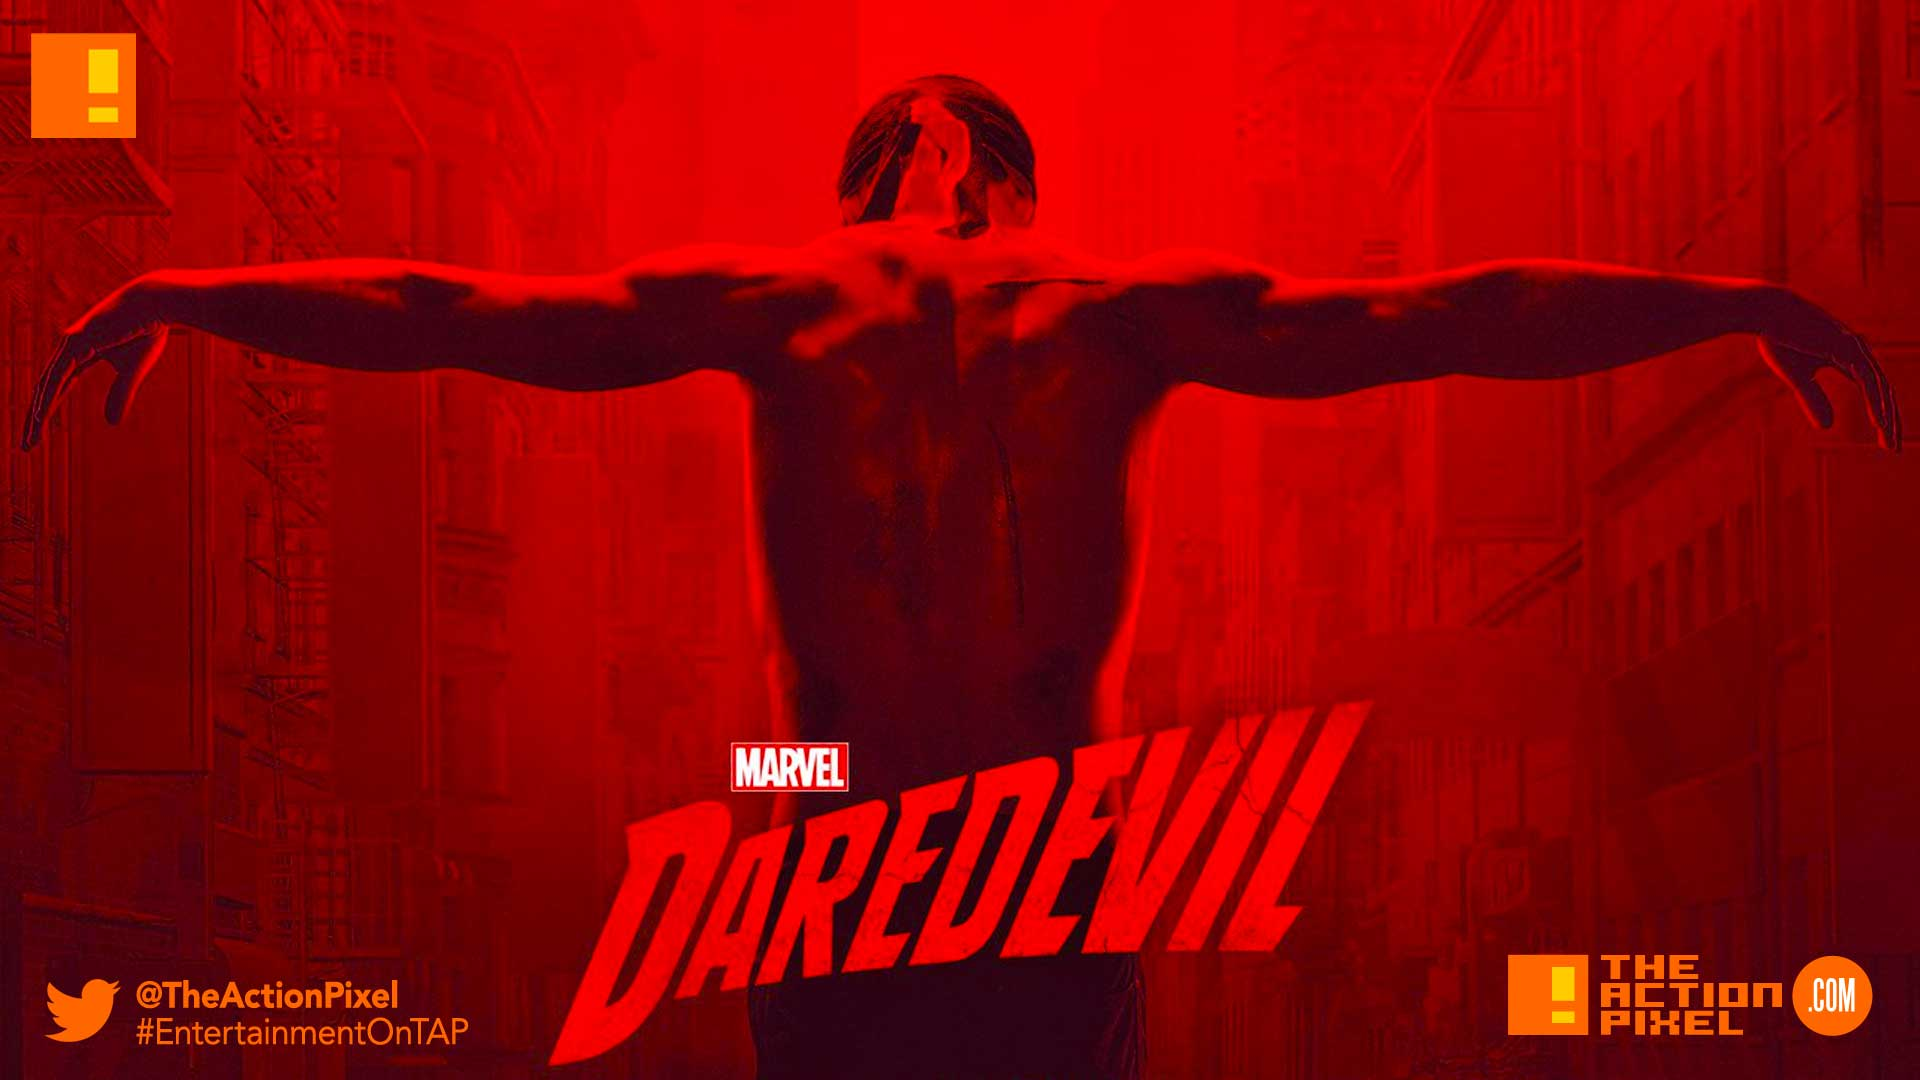 daredevil, season 3, date announcement,dardevil season 3, daredevil, charlie cox, matt murdock, teaser, catholic church, confessional, priest, abuse, child abuse, church, confession booth, teaser, daredevil, netflix, marvel comics, marvel,christ, jesus, crucifixion,